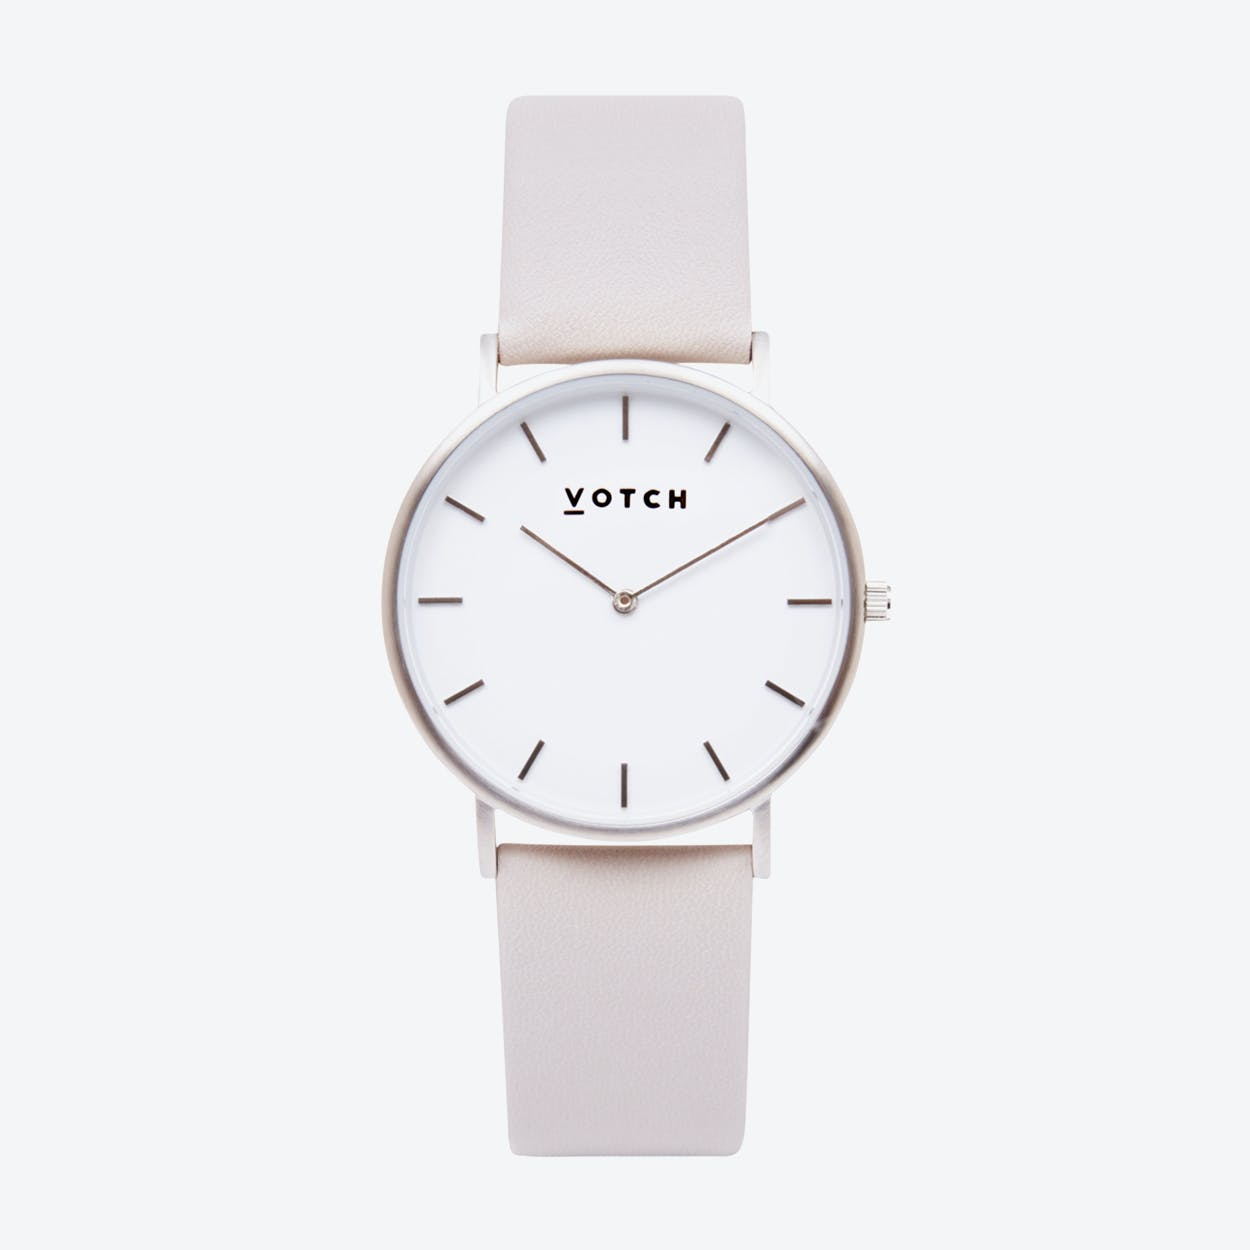 Classic Watch in Silver with White Face and Light Grey Vegan Leather Strap, 38mm